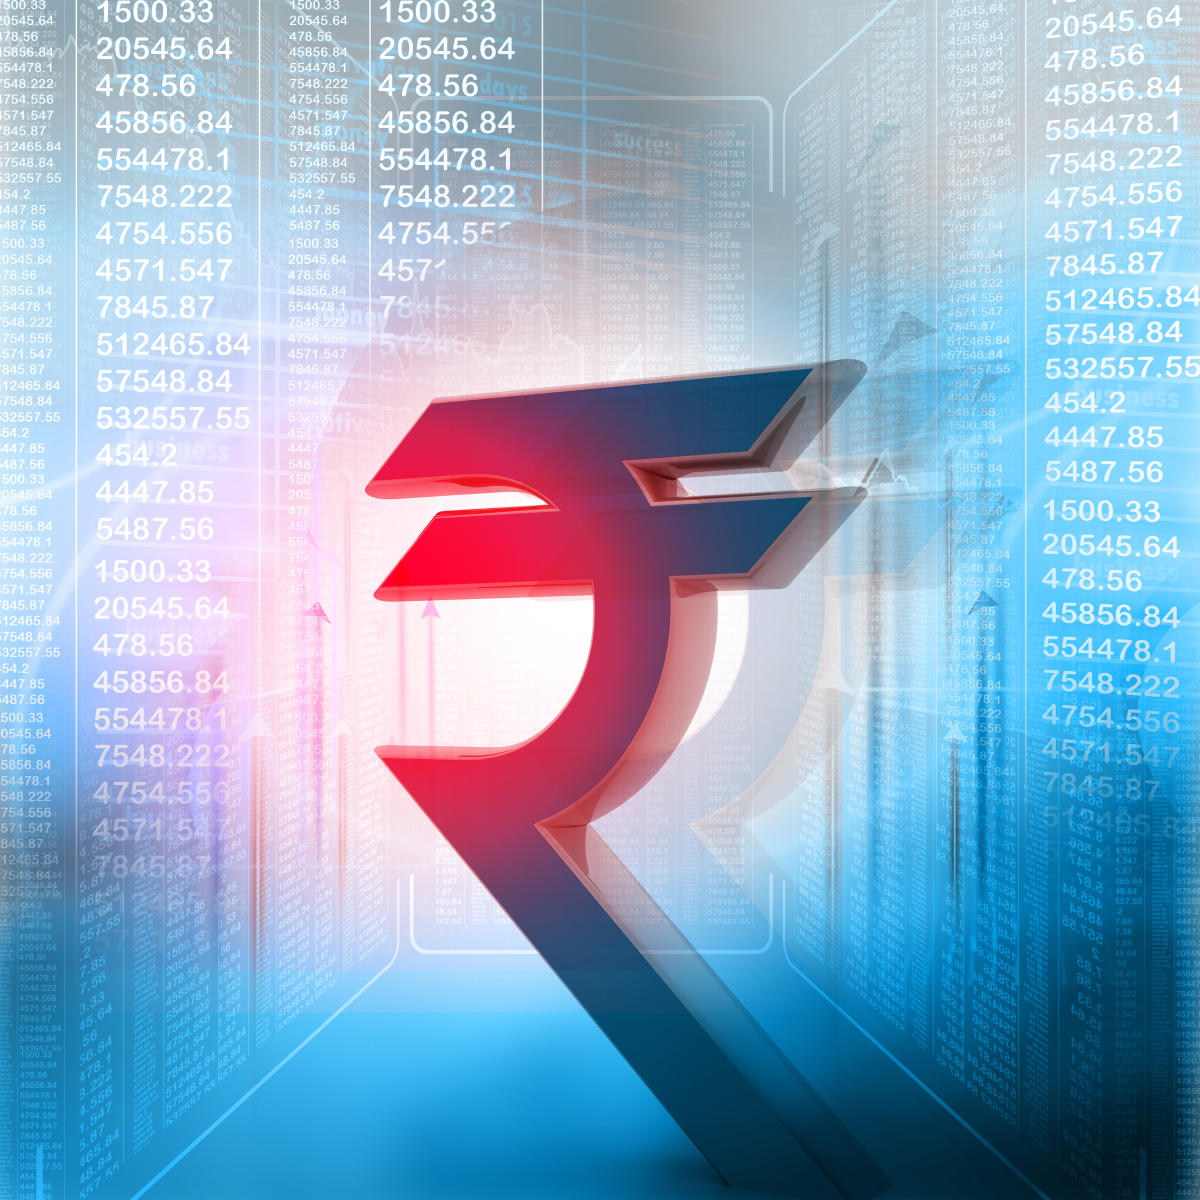 The dollar's weakness against some currencies overseas and a better opening of domestic equities supported the rupee's recovery, traders said.